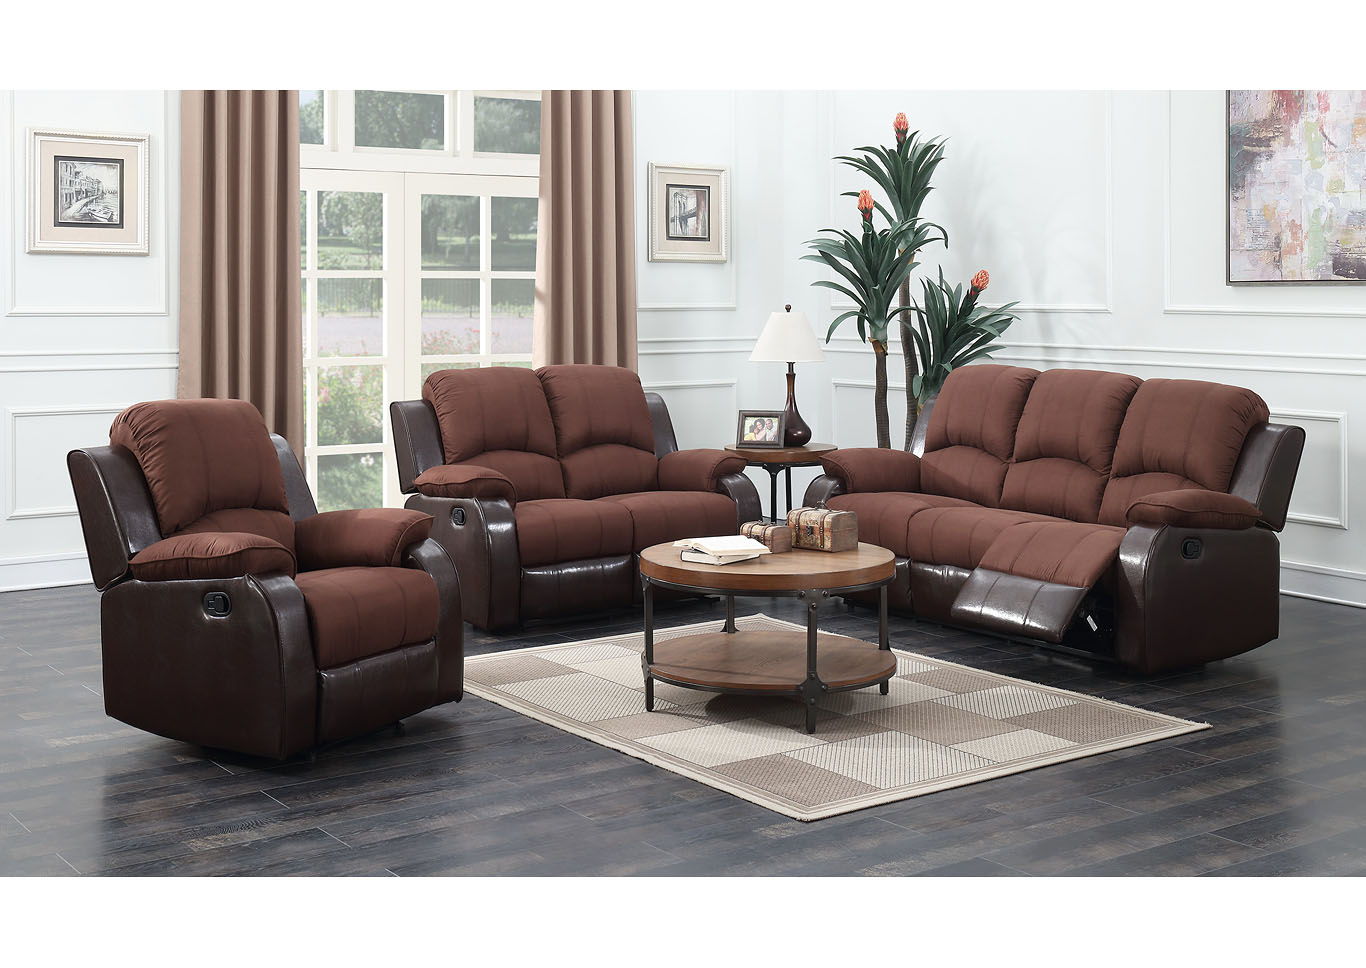 Brown Reclining Sofa & Loveseat,Global Trading